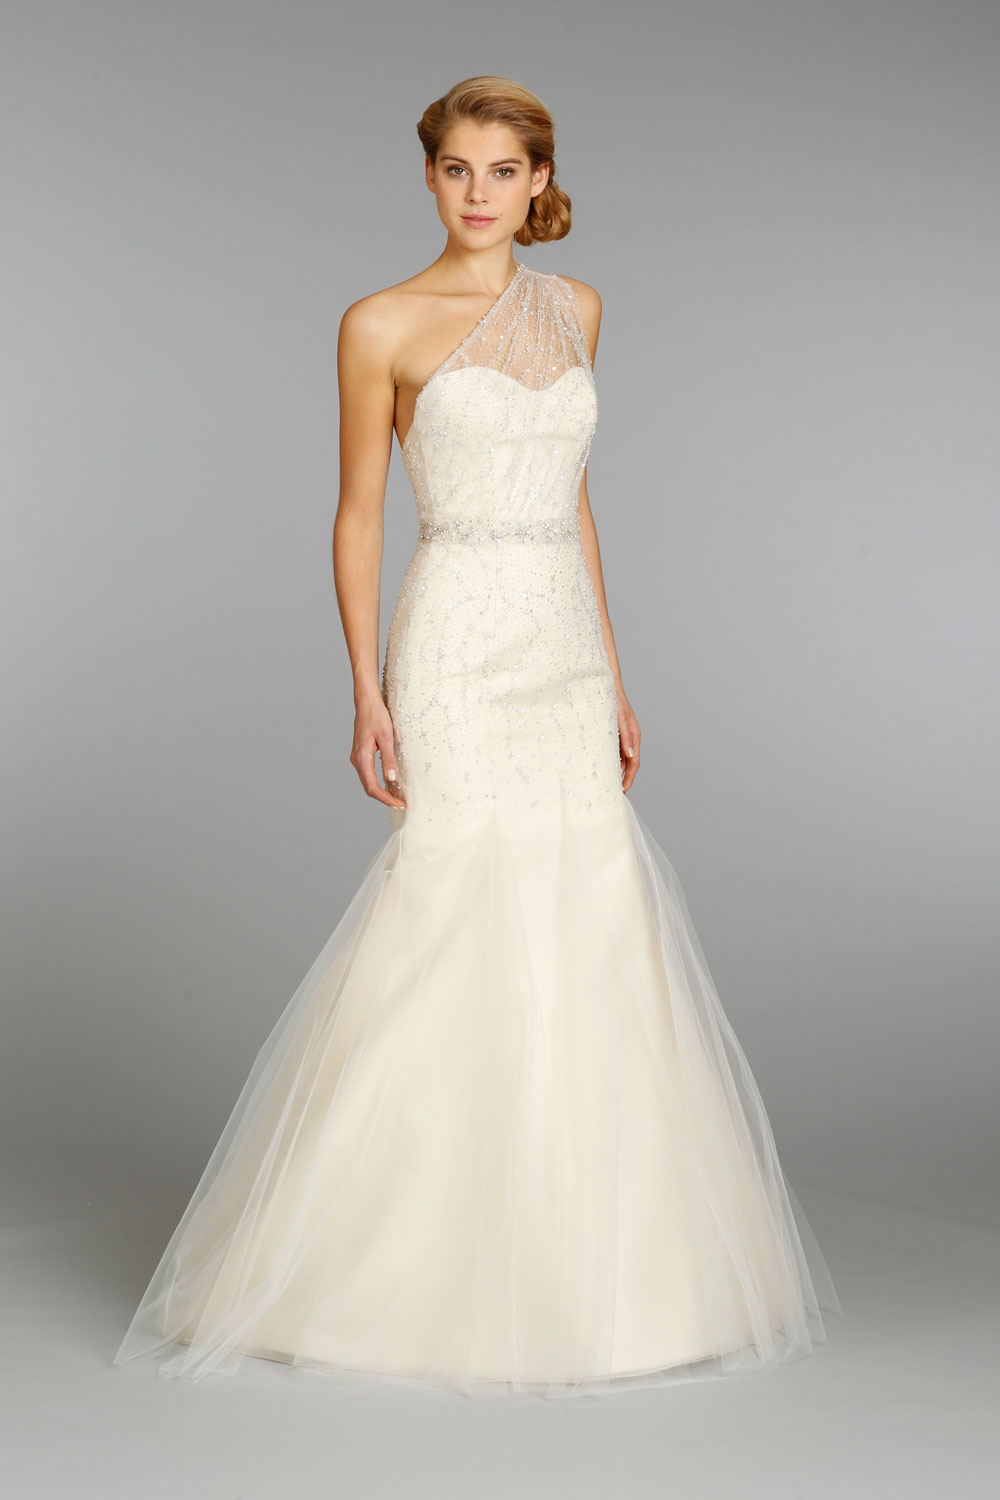 Jim hjelm wedding dress fall 2013 bridal 8352 for Jim hjelm wedding dresses